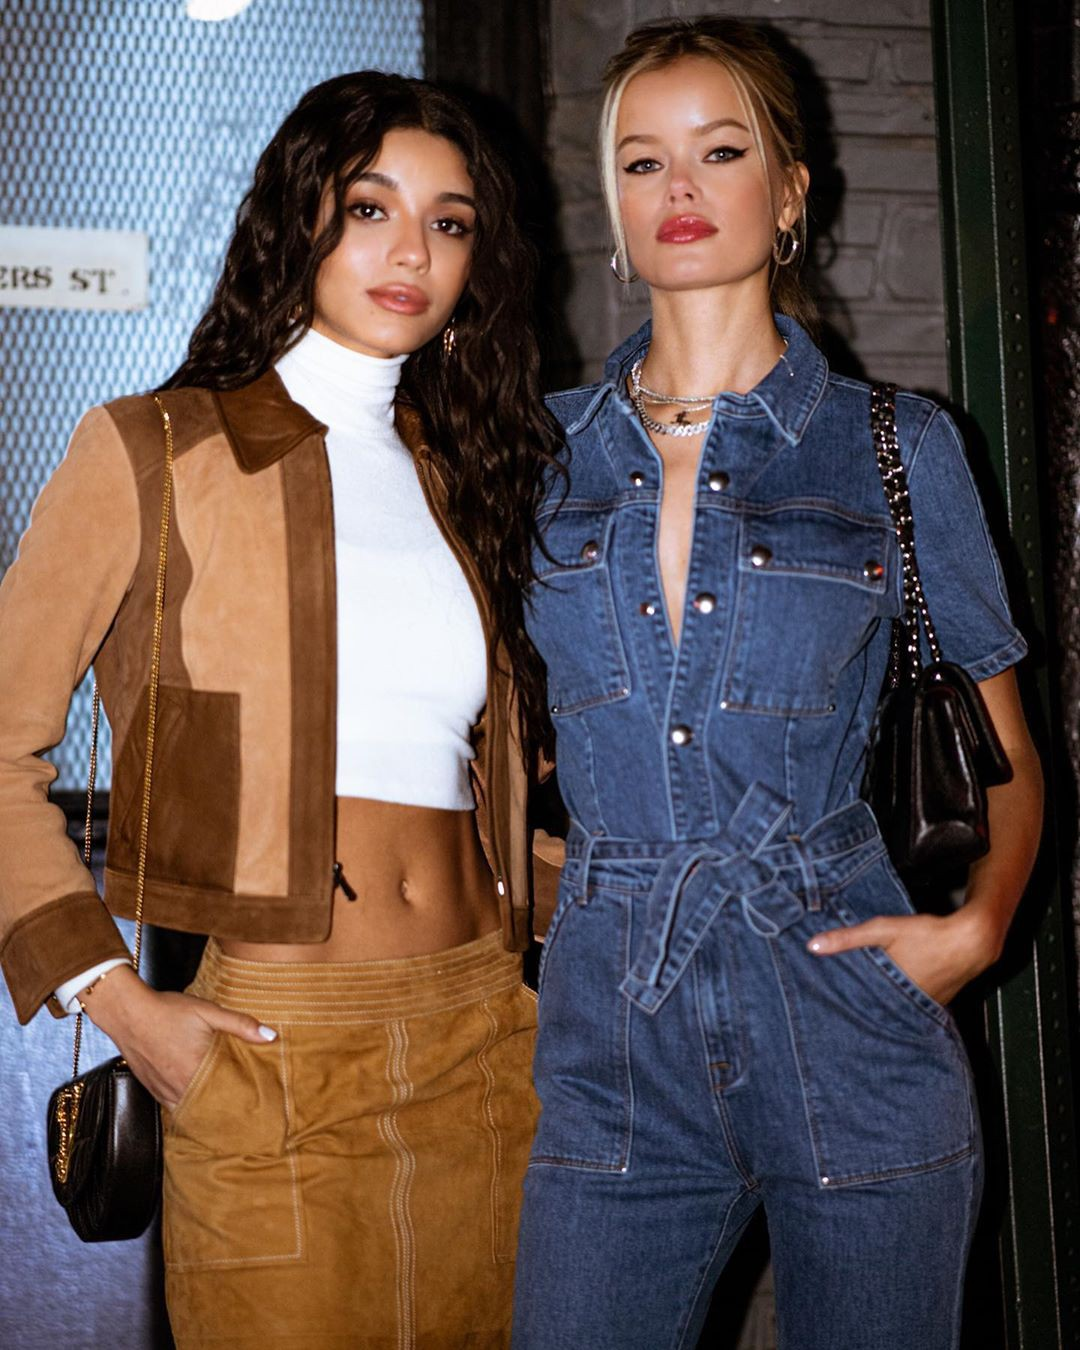 Yovanna Ventura jeans, denim outfits for girls, Outerwear